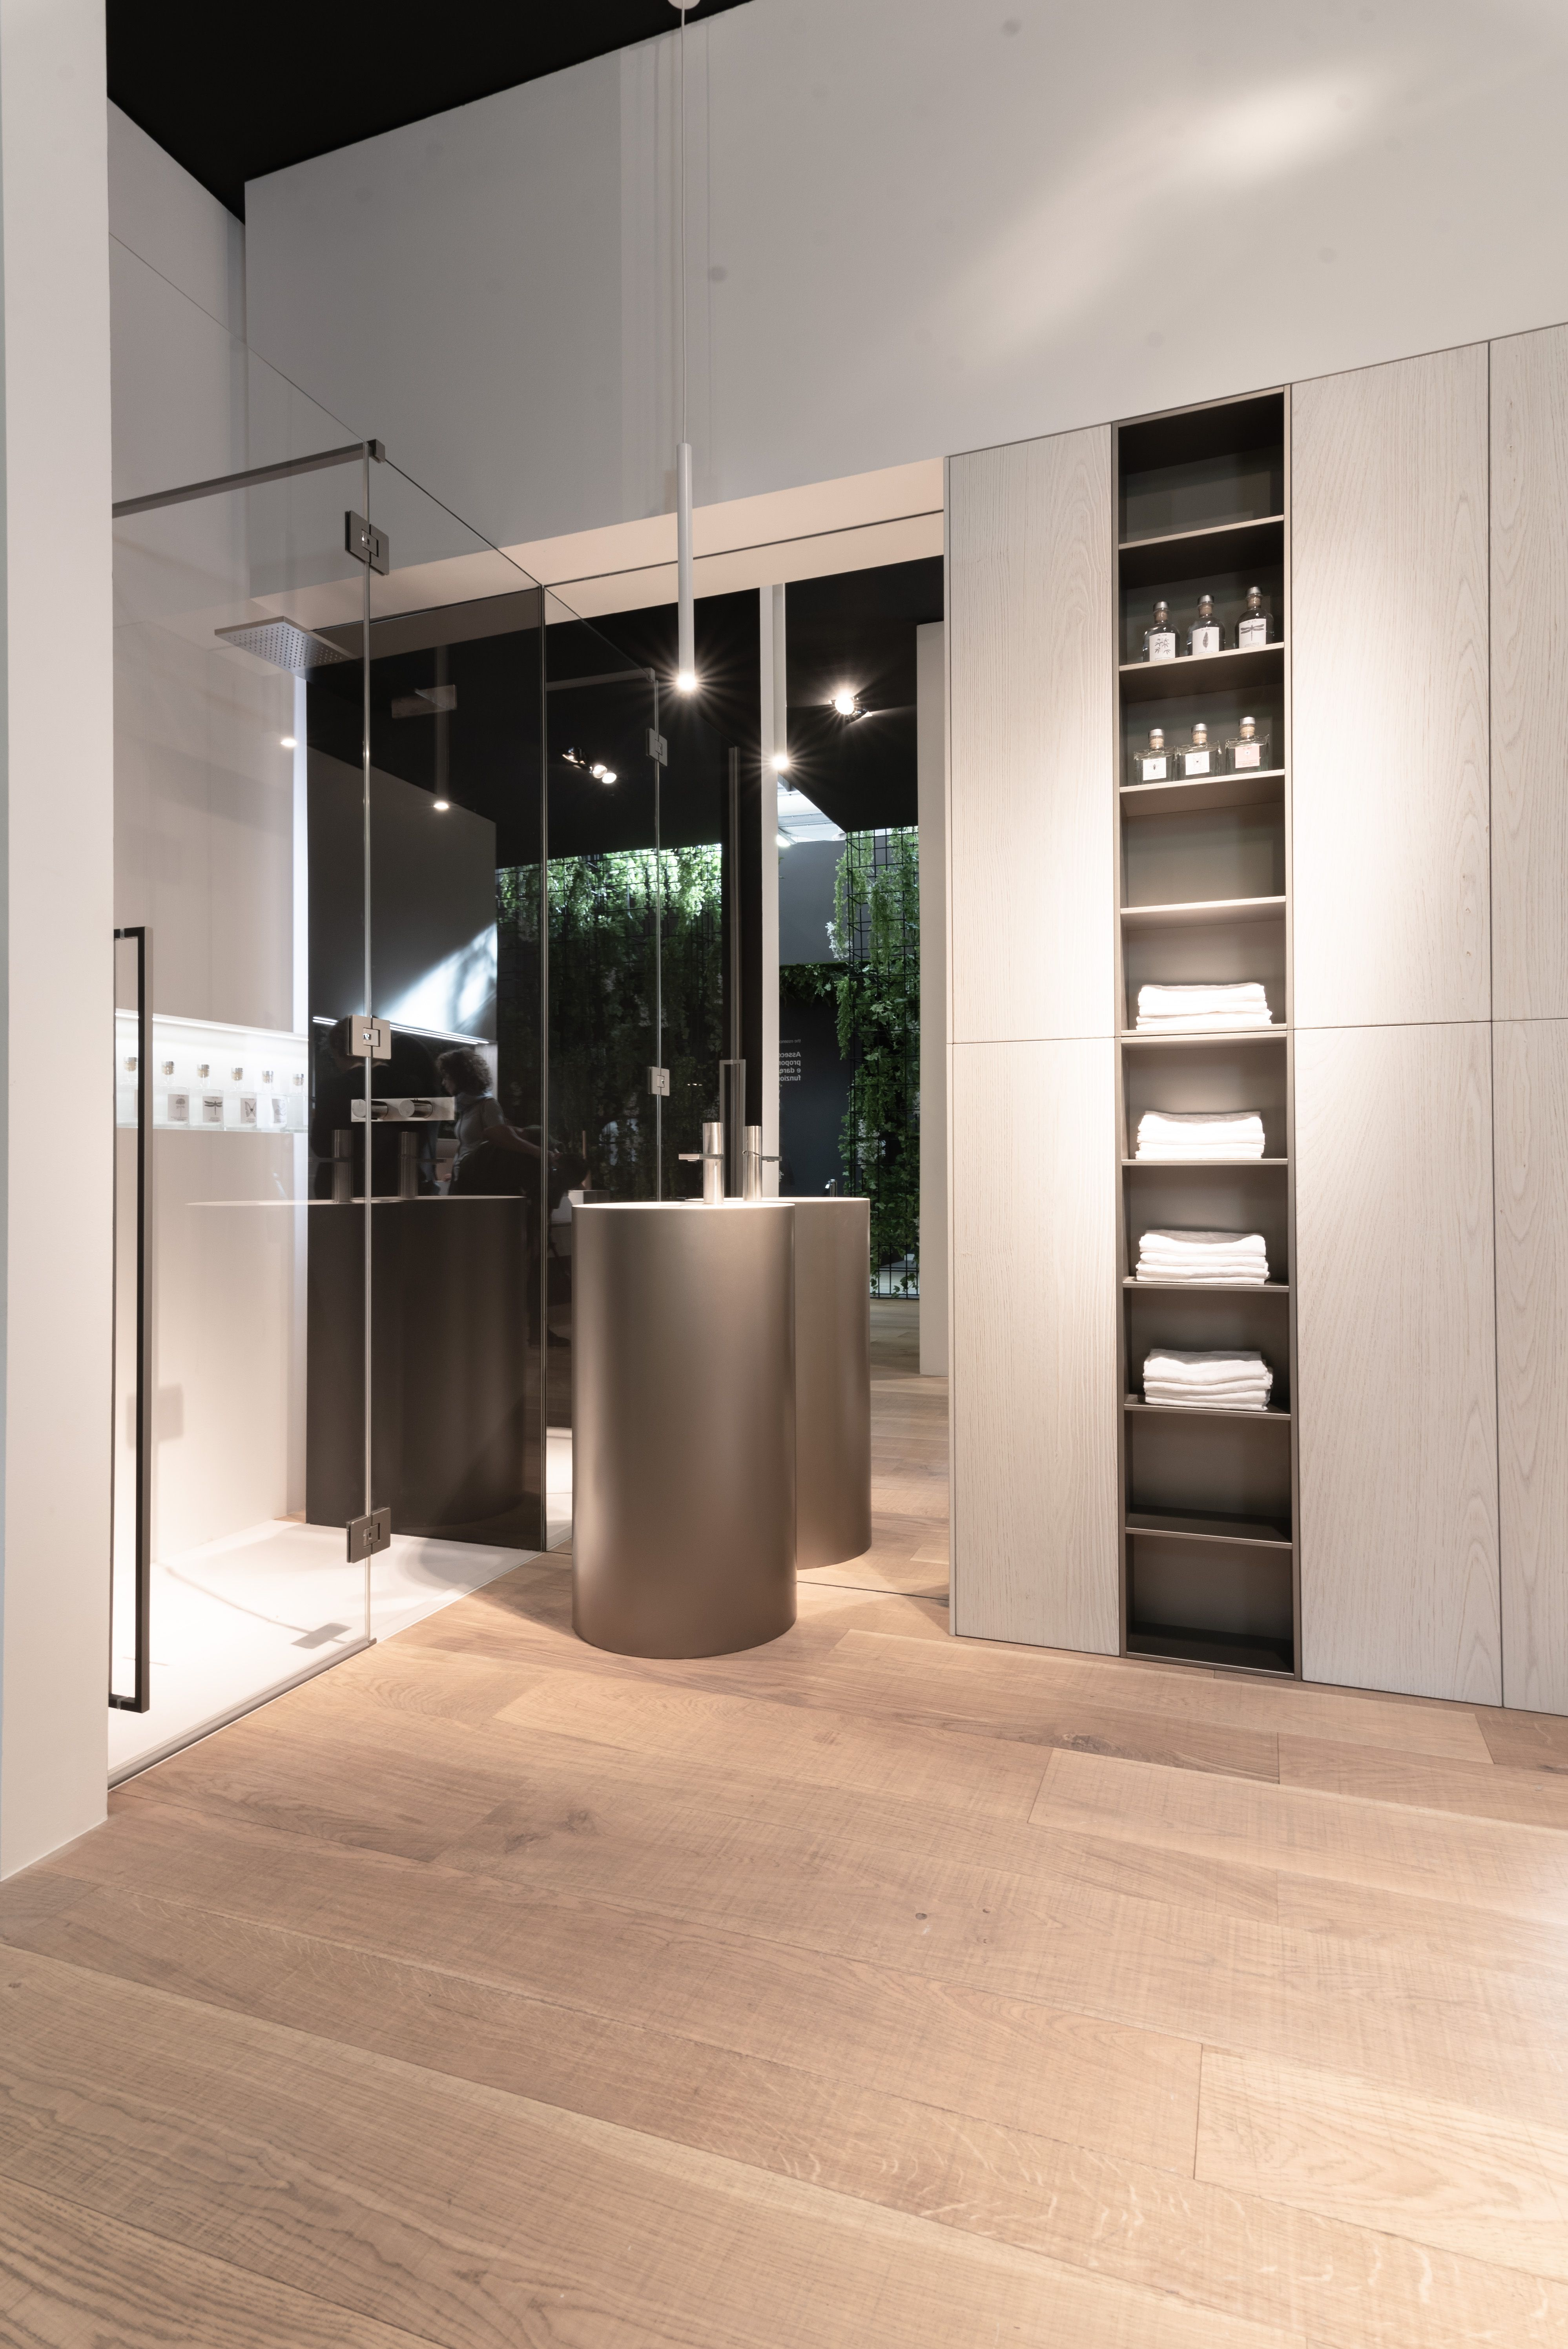 My Fly Mobili Bagno.With Theessenceofmaterials At Cersaie2018 Ideagroup Wishes